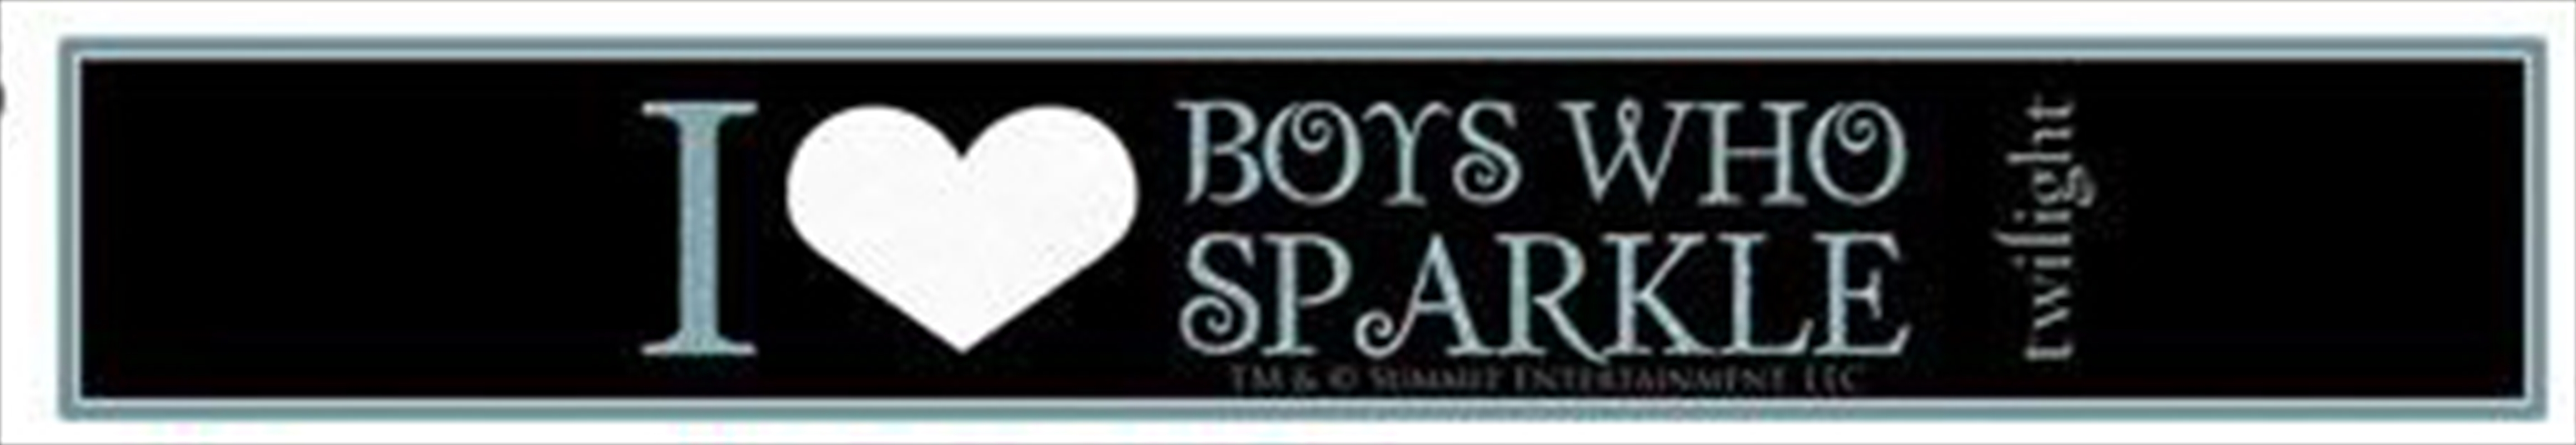 I Love Boys Who Sparkle Slap Bracelet | Merchandise